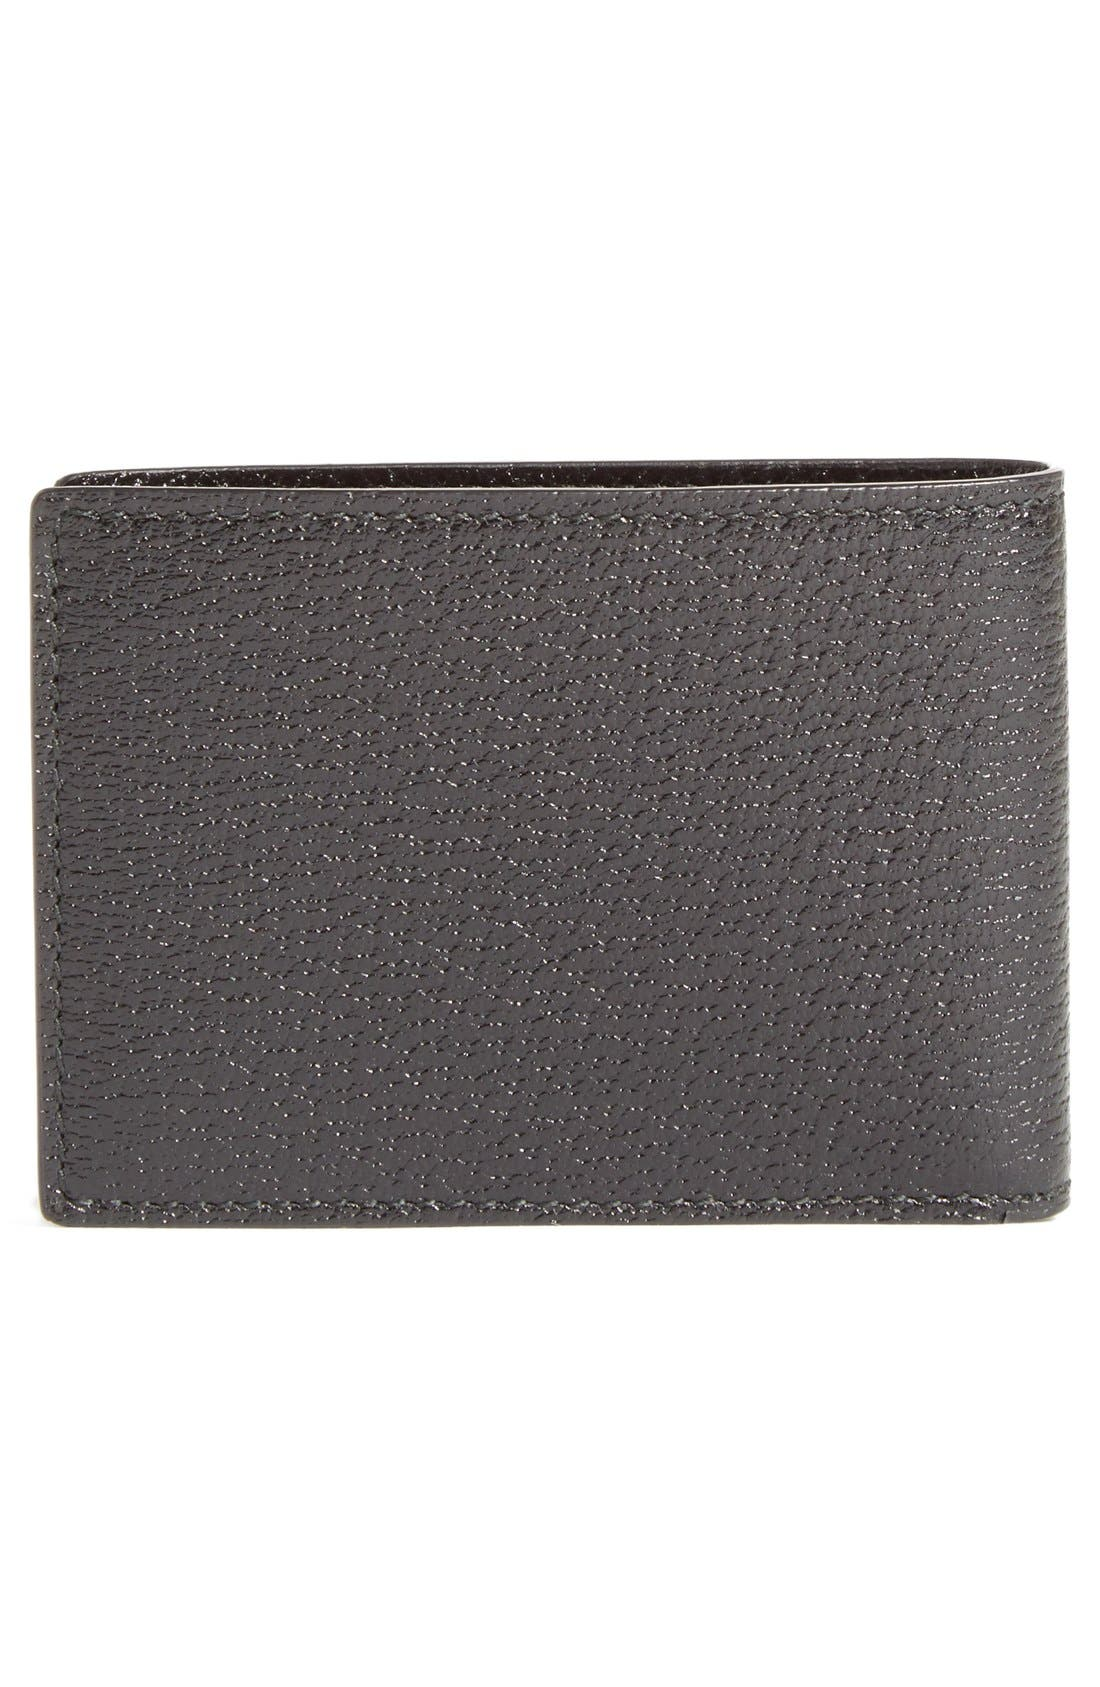 Marmont Leather Wallet,                             Alternate thumbnail 9, color,